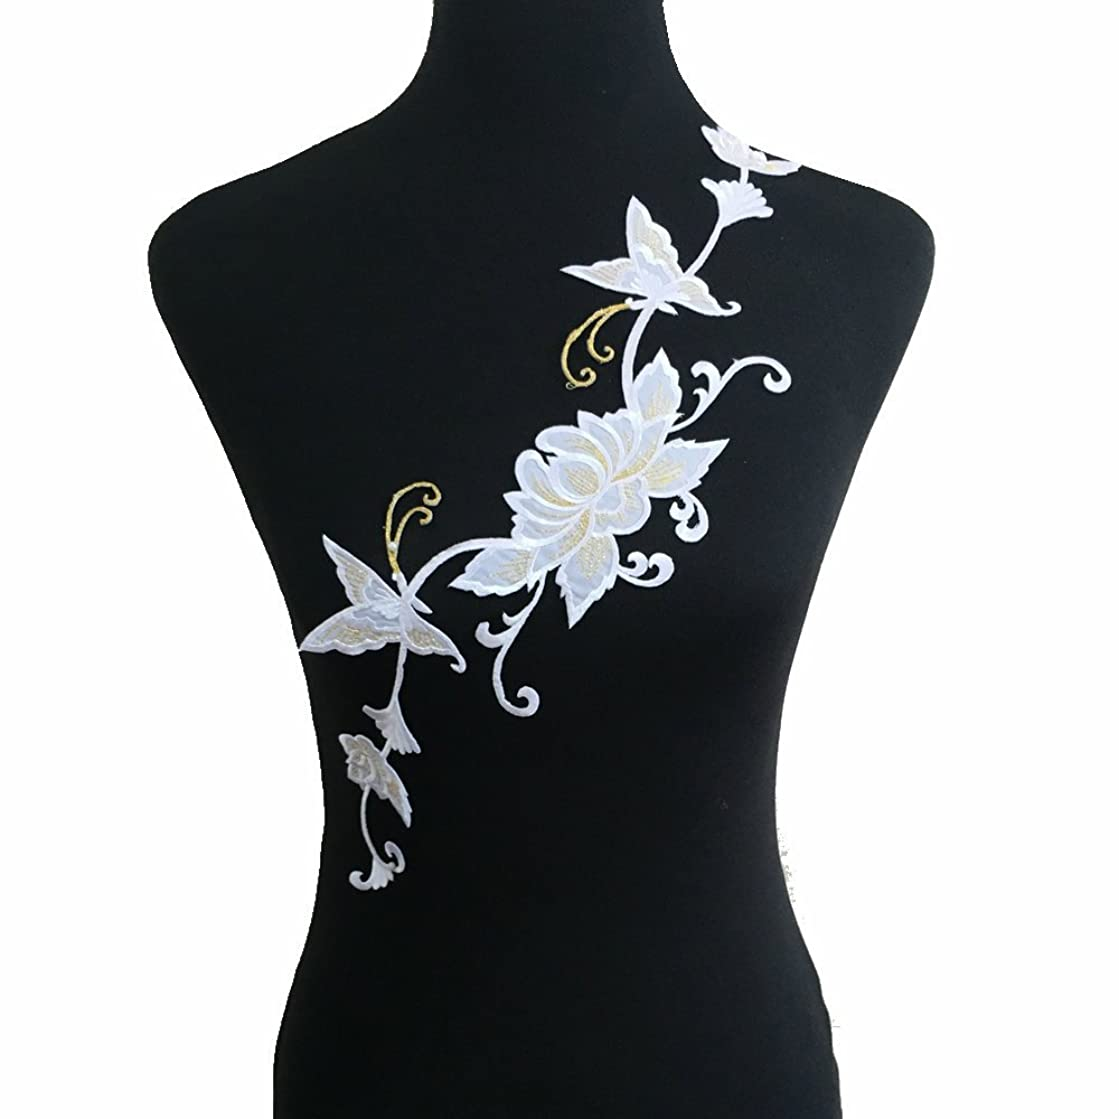 Big Flower Iron on Embroidered Appliques Patch Embroidered Lace Fabric Ribbon Trim Neckline Collar (Style A)